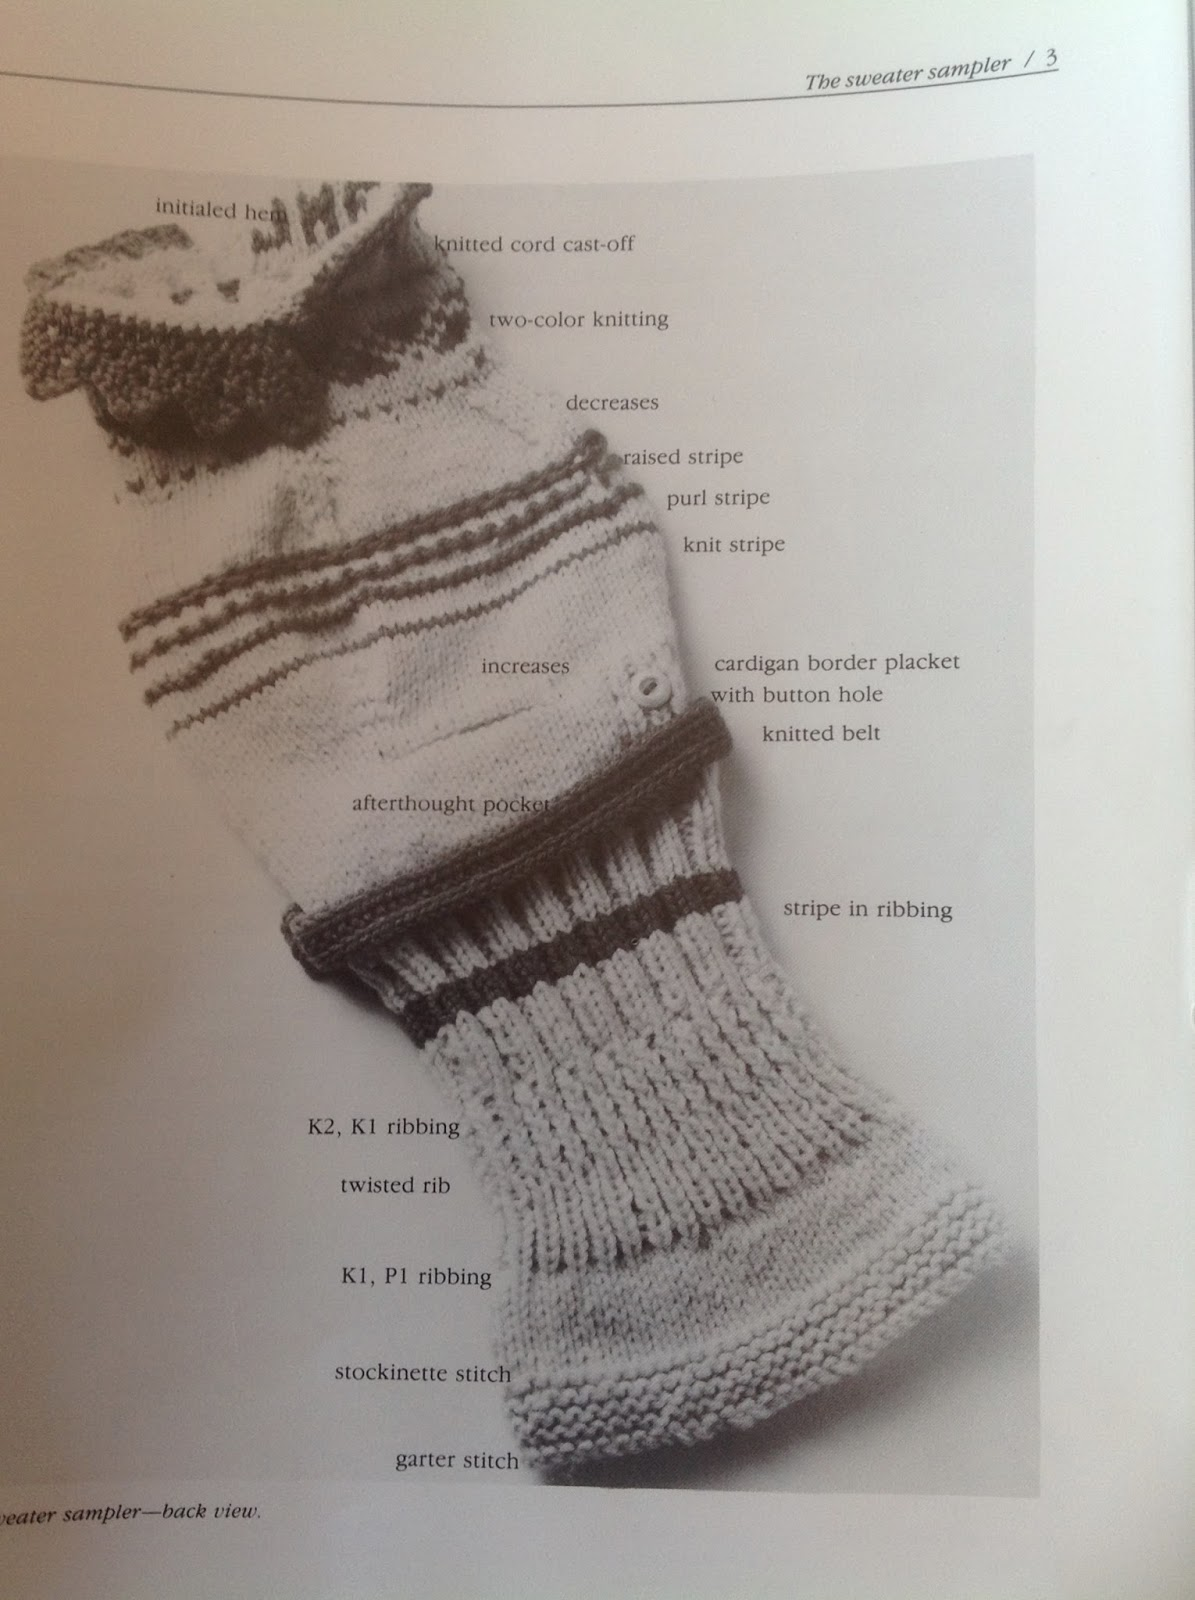 how easy is it to learn how to knit